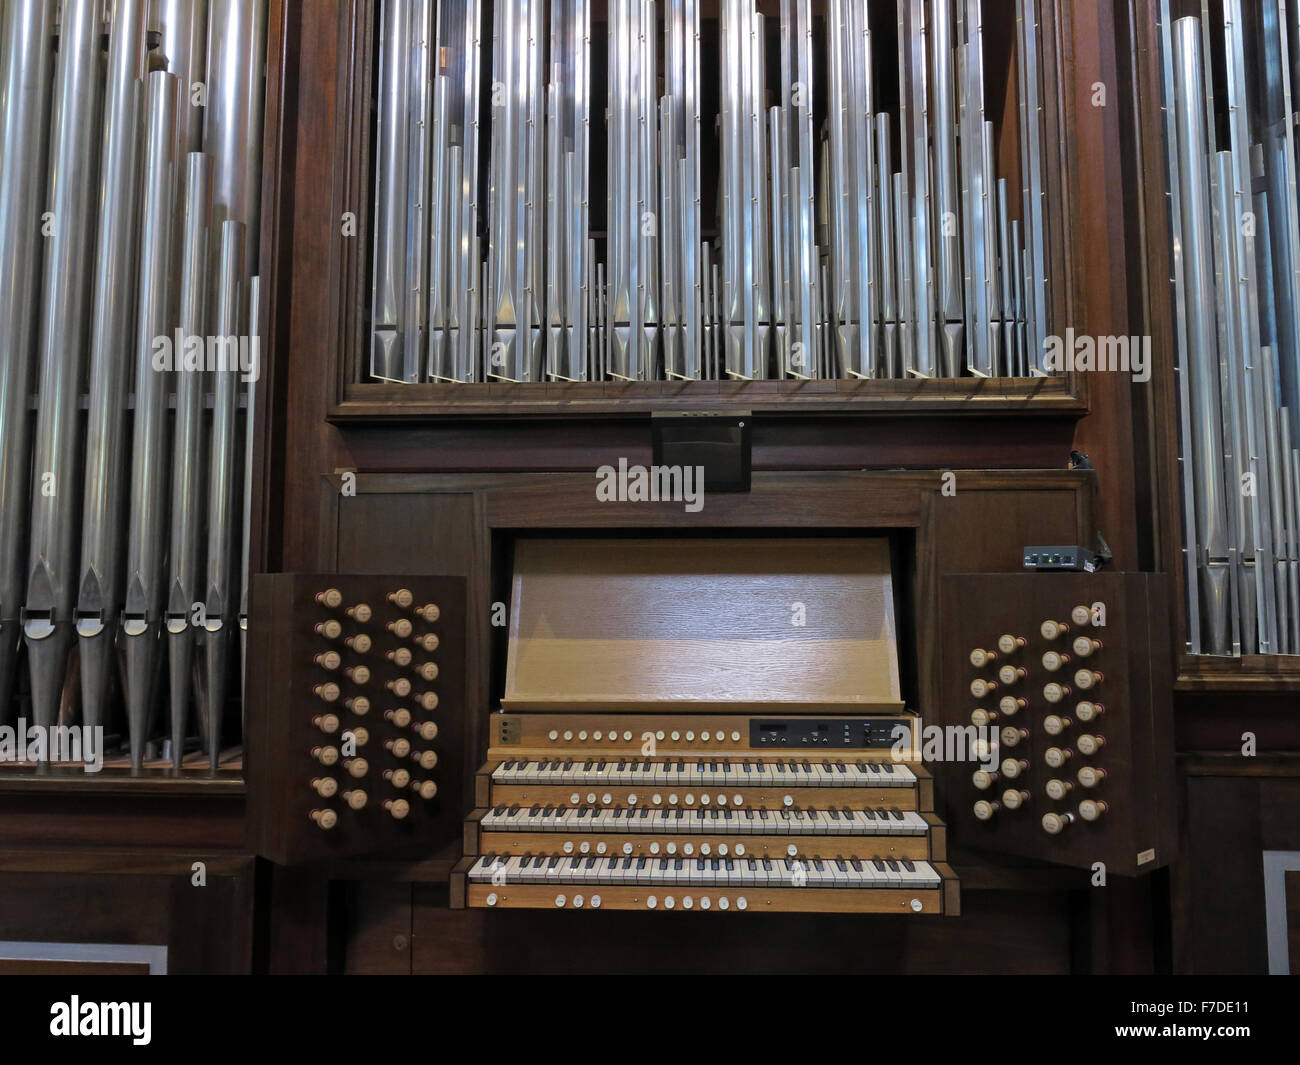 Organ at All Saints, Kingston Upon Thames,London,England,UK - Stock Image